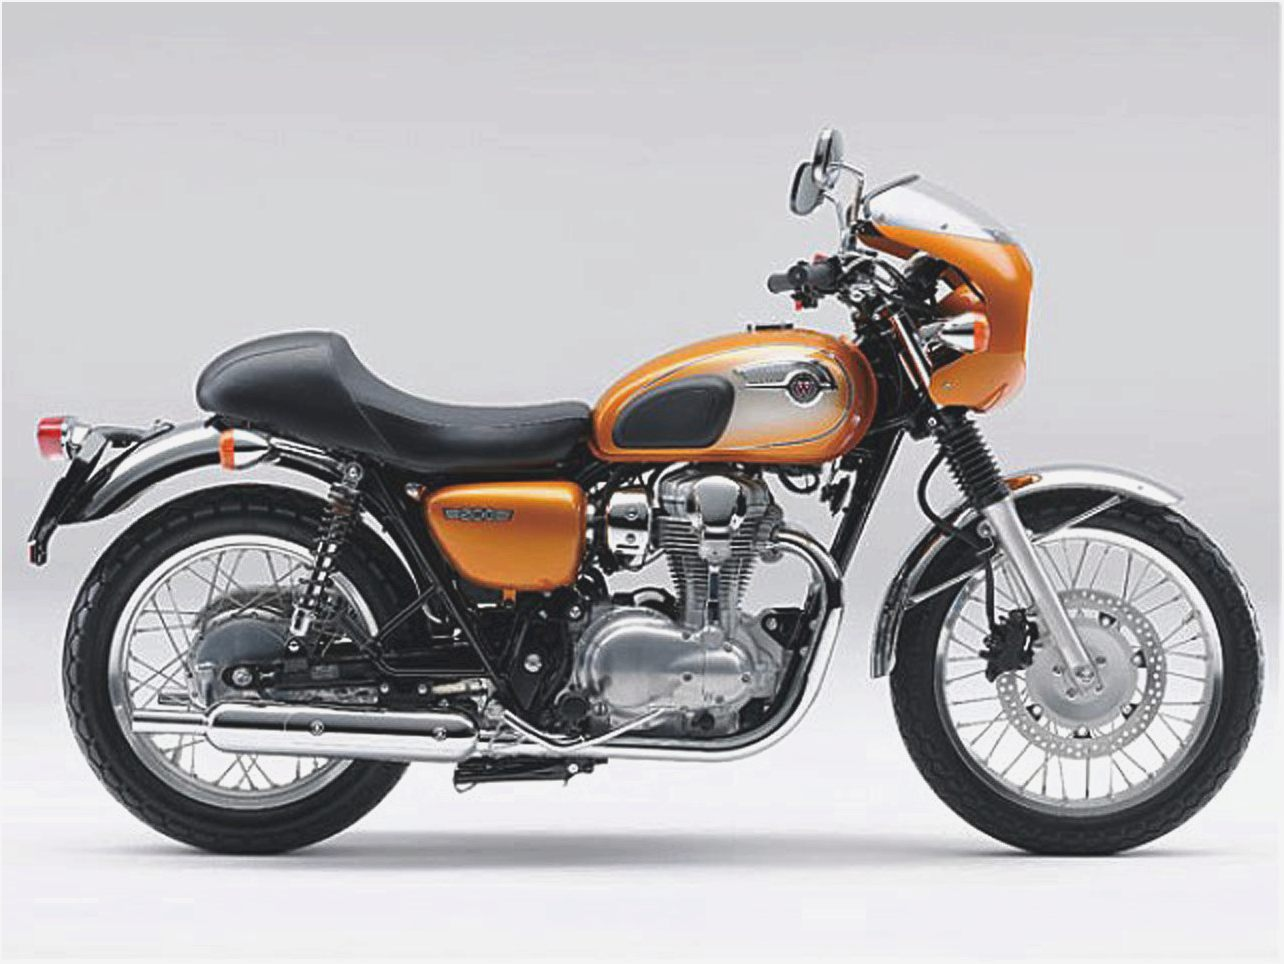 Kawasaki W800 Cafe Style images #86143